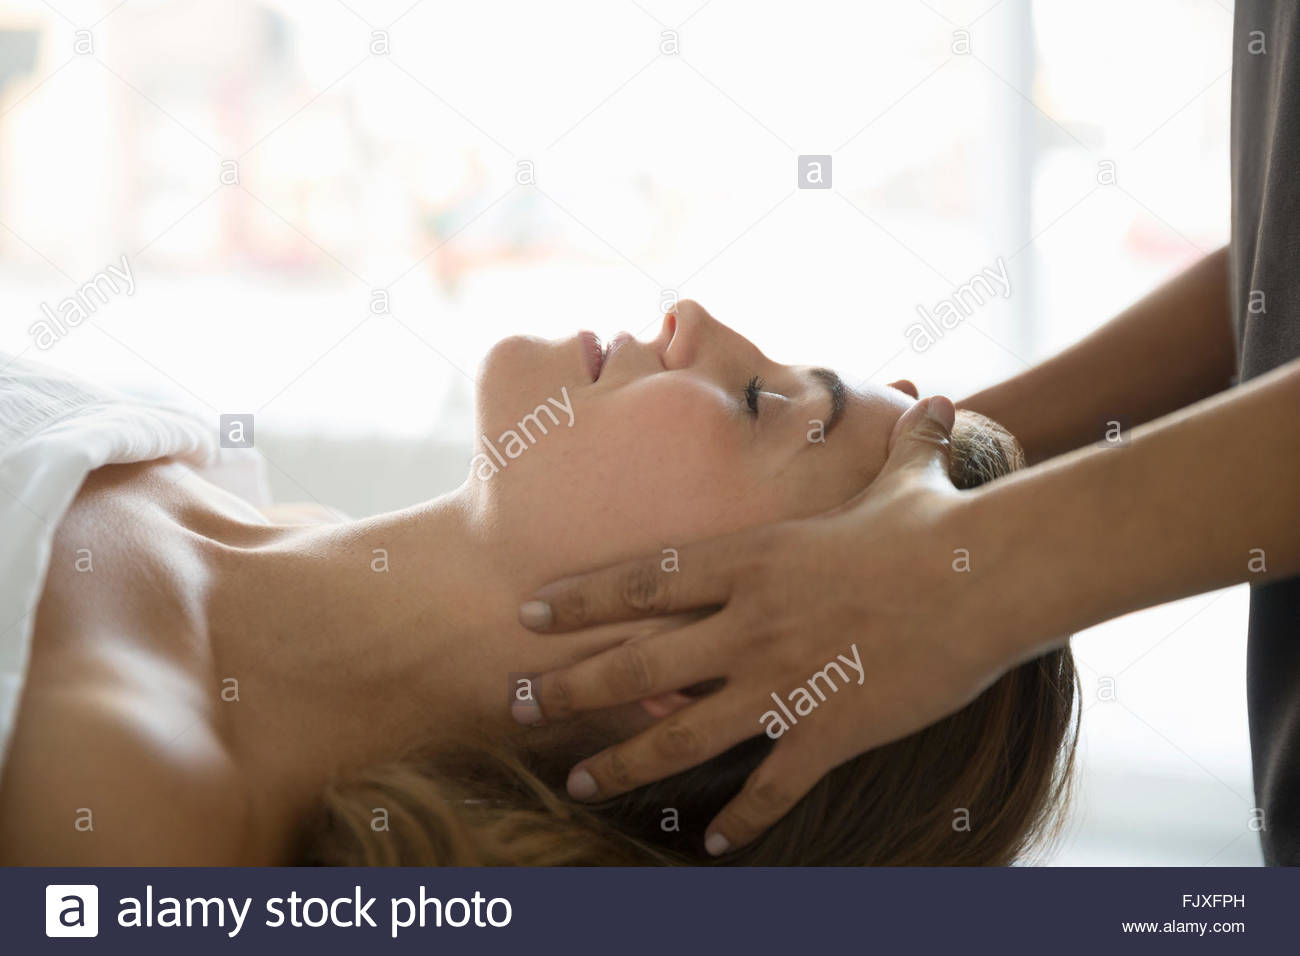 Serene woman with eyes closed receiving head massage - Stock Image